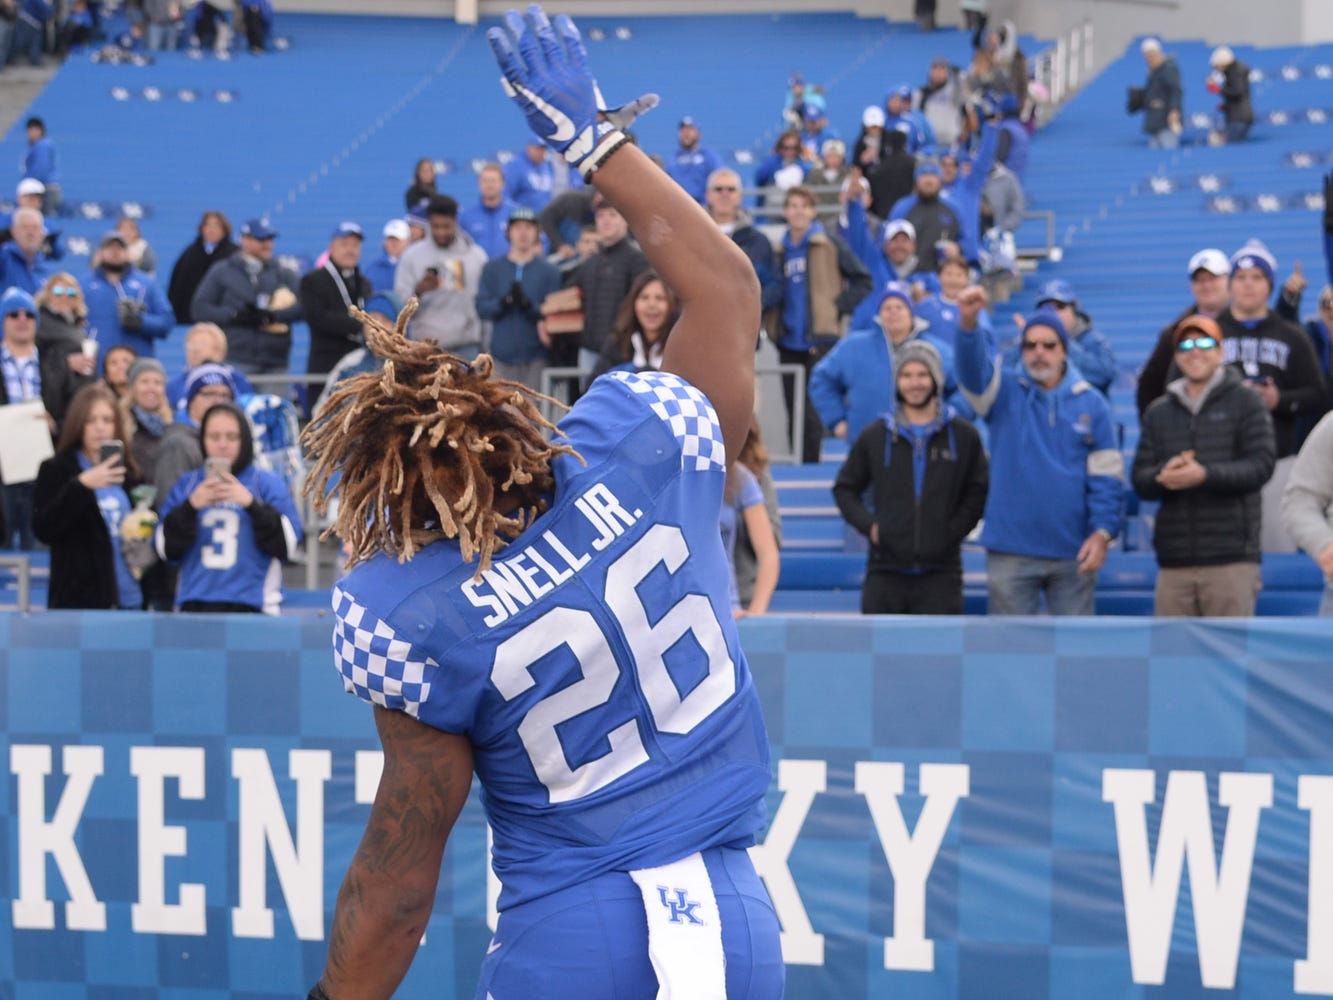 UK RB Benny Snell Jr., throws his glove to fans after the University of Kentucky football game against Middle Tennessee at Kroger Field in Lexington, Kentucky on Saturday, November 17, 2018.